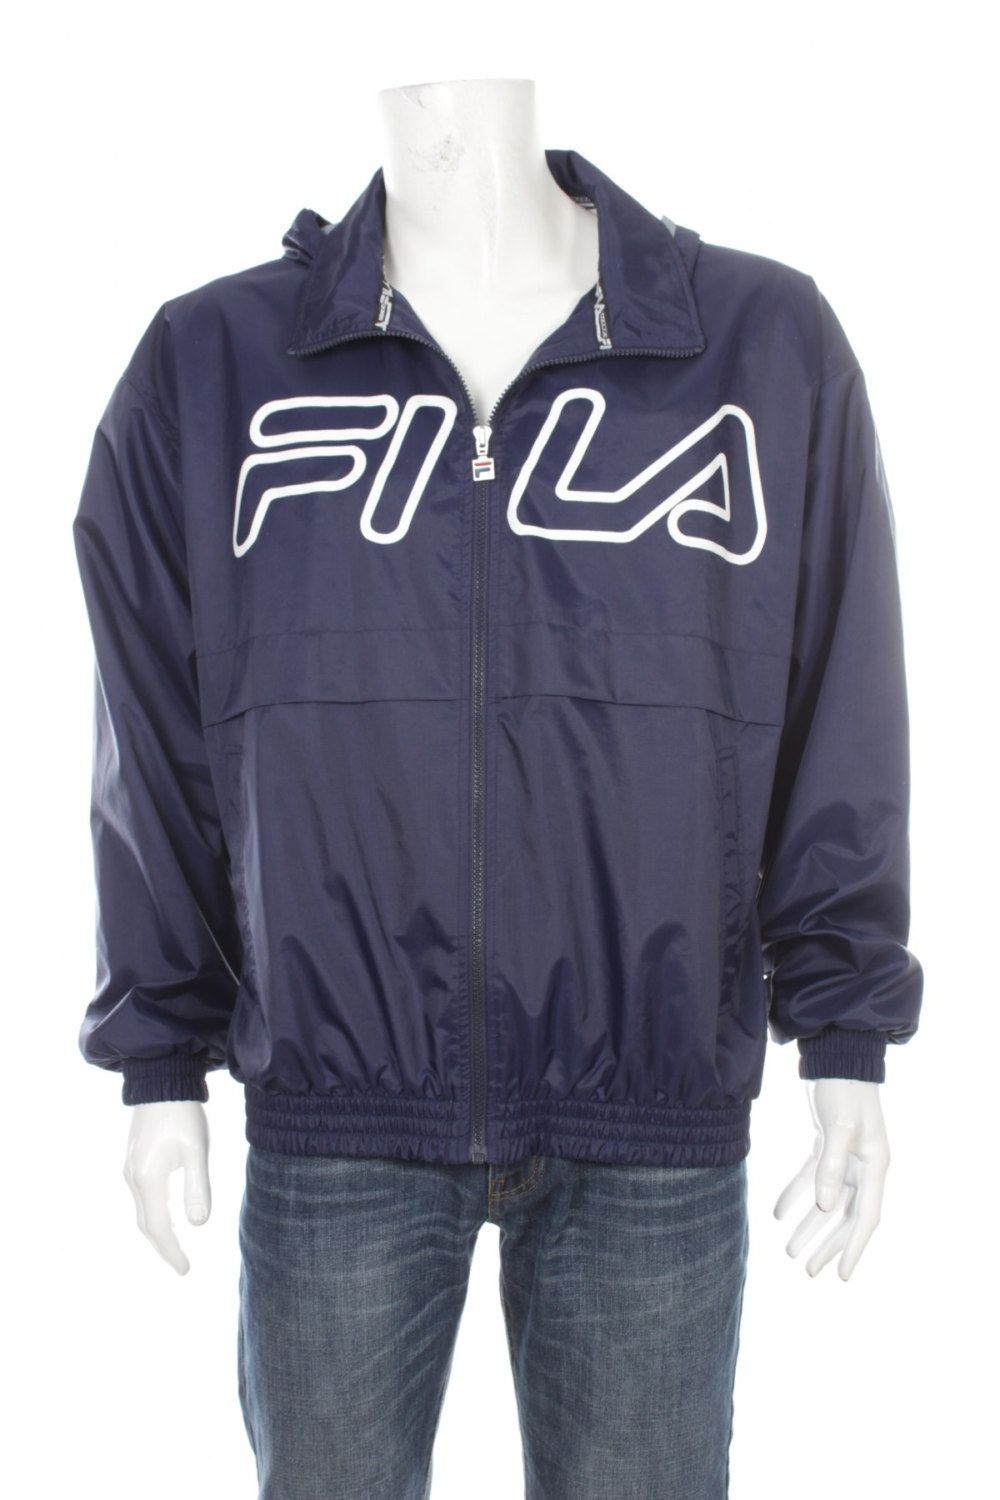 8661aede990 Vintage 90s FILA Nylon Windbreaker Jacket / Big Logo Spell Out/ with Hidden  Hood / Hip Hop Rap Style / Size L by VapeoVintage on Etsy